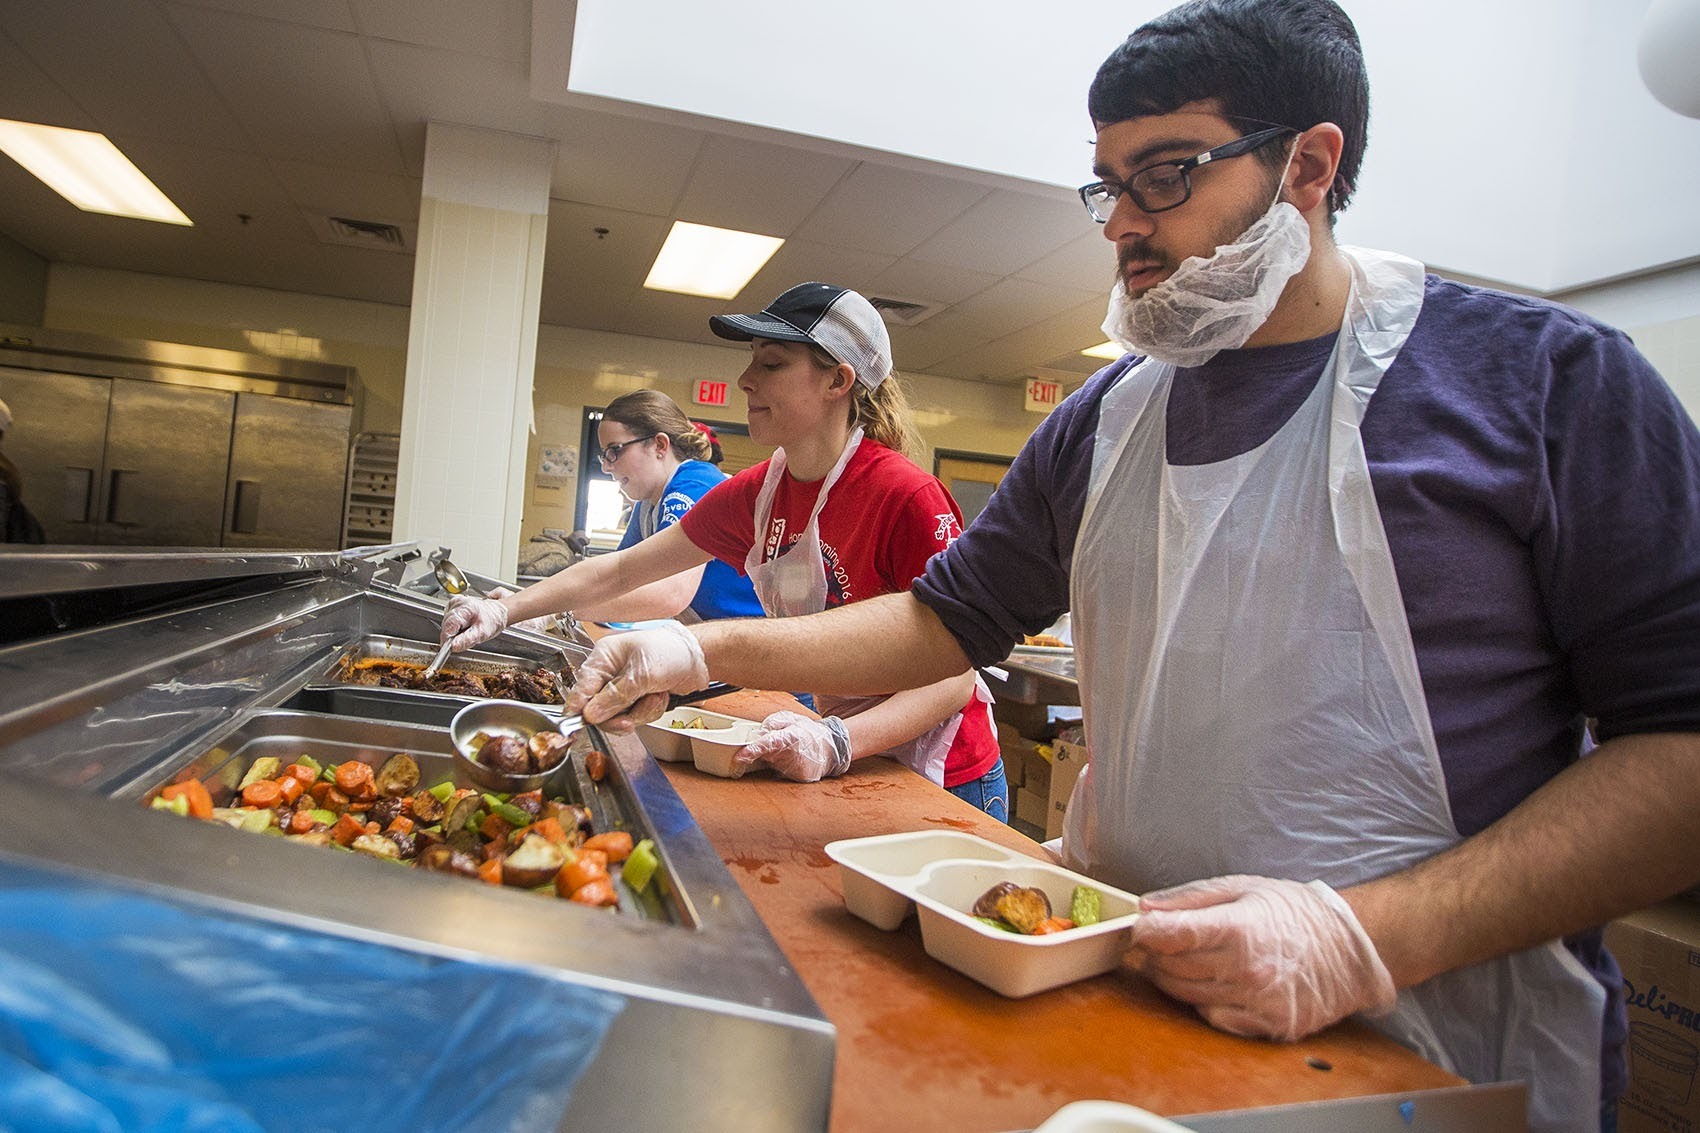 Researchers Are Studying Whether Community Servings Program Delivering Medically Tailored Meals To Homebound